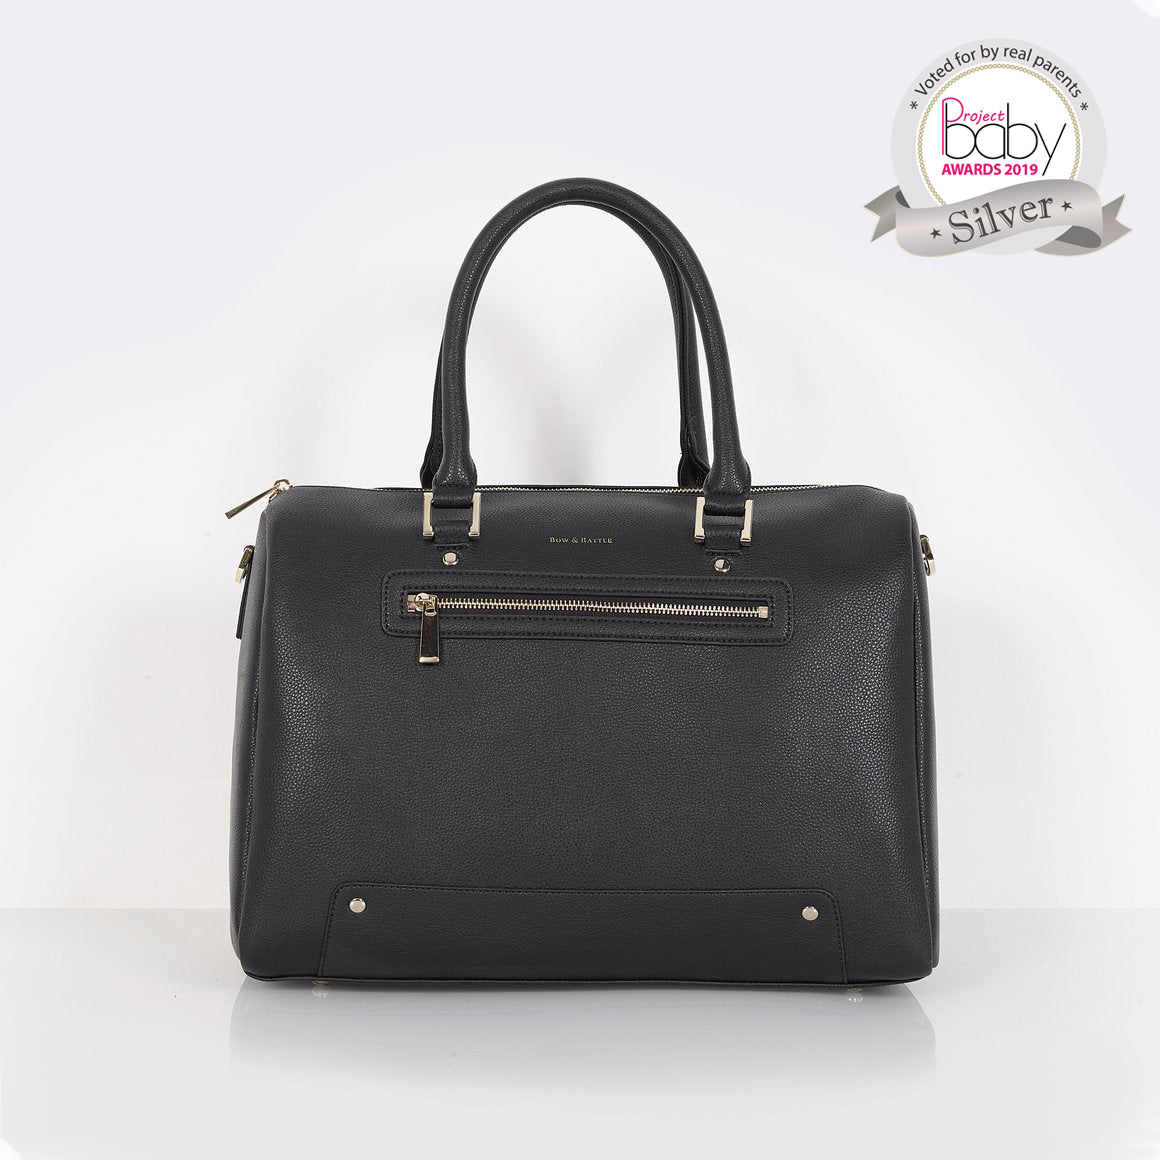 The Rosie black pebble changing bag